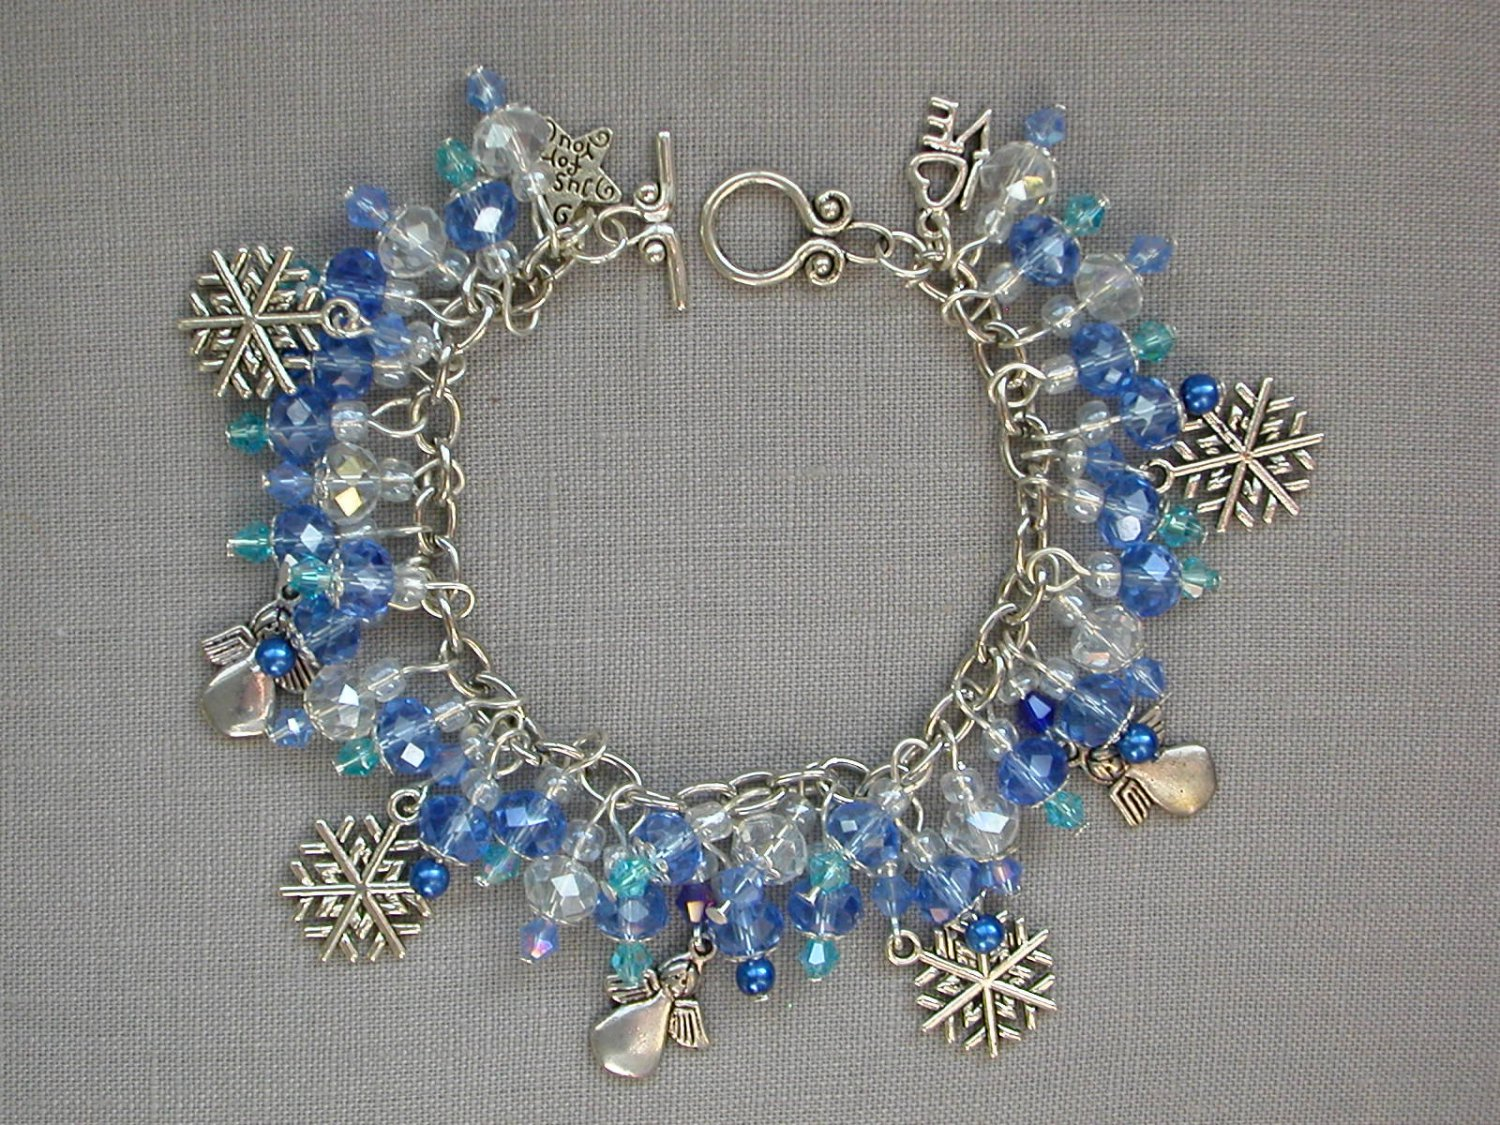 Snowflake and Angel Charm Baby Blue Crystal Bead Bracelet